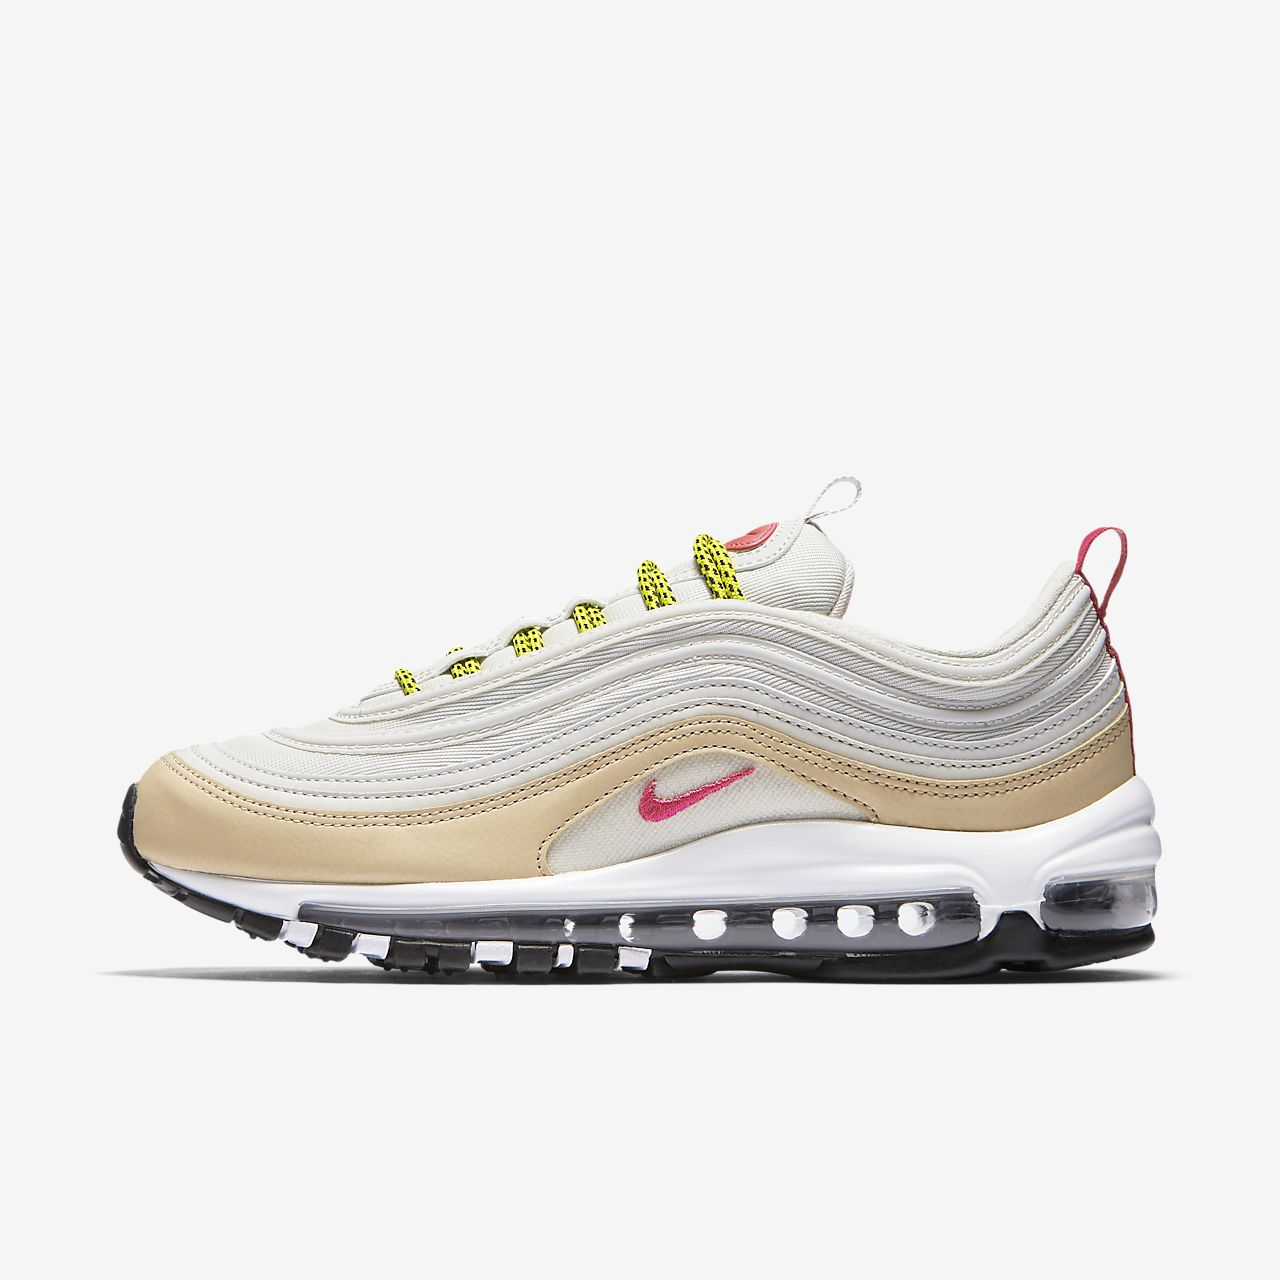 nike air max 97 mujee